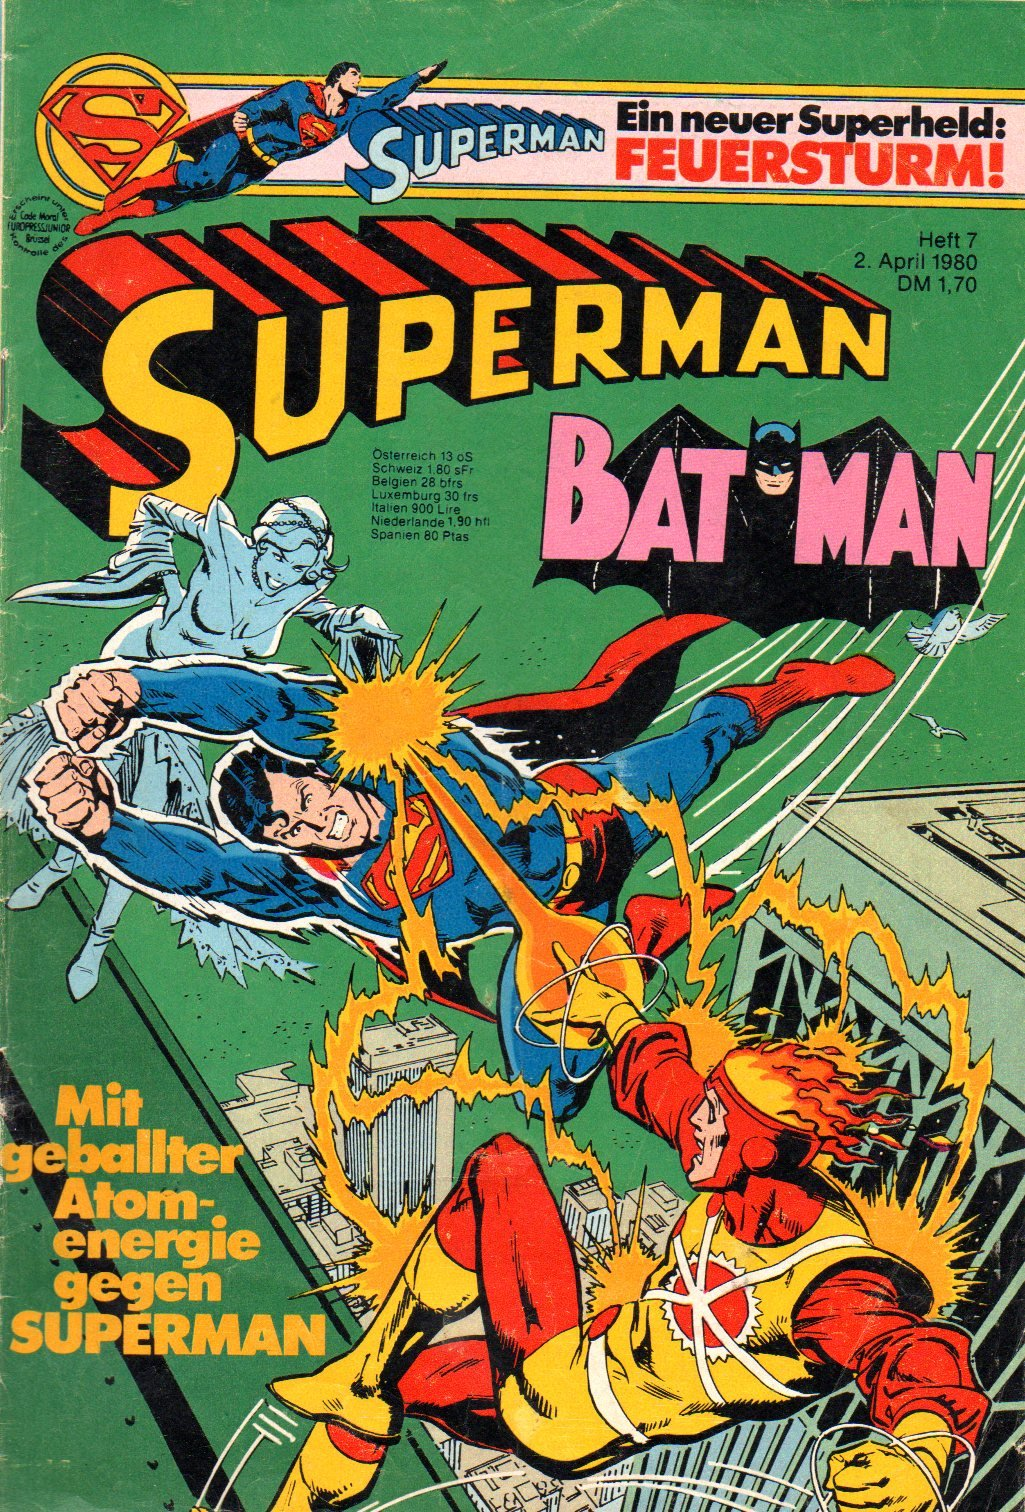 Superman Batman Comic Großband # 7 - Ehapa Verlag 1980 (Superman) Comic – 1980 B005WAKAI0 Belletristik - Comic Cartoon